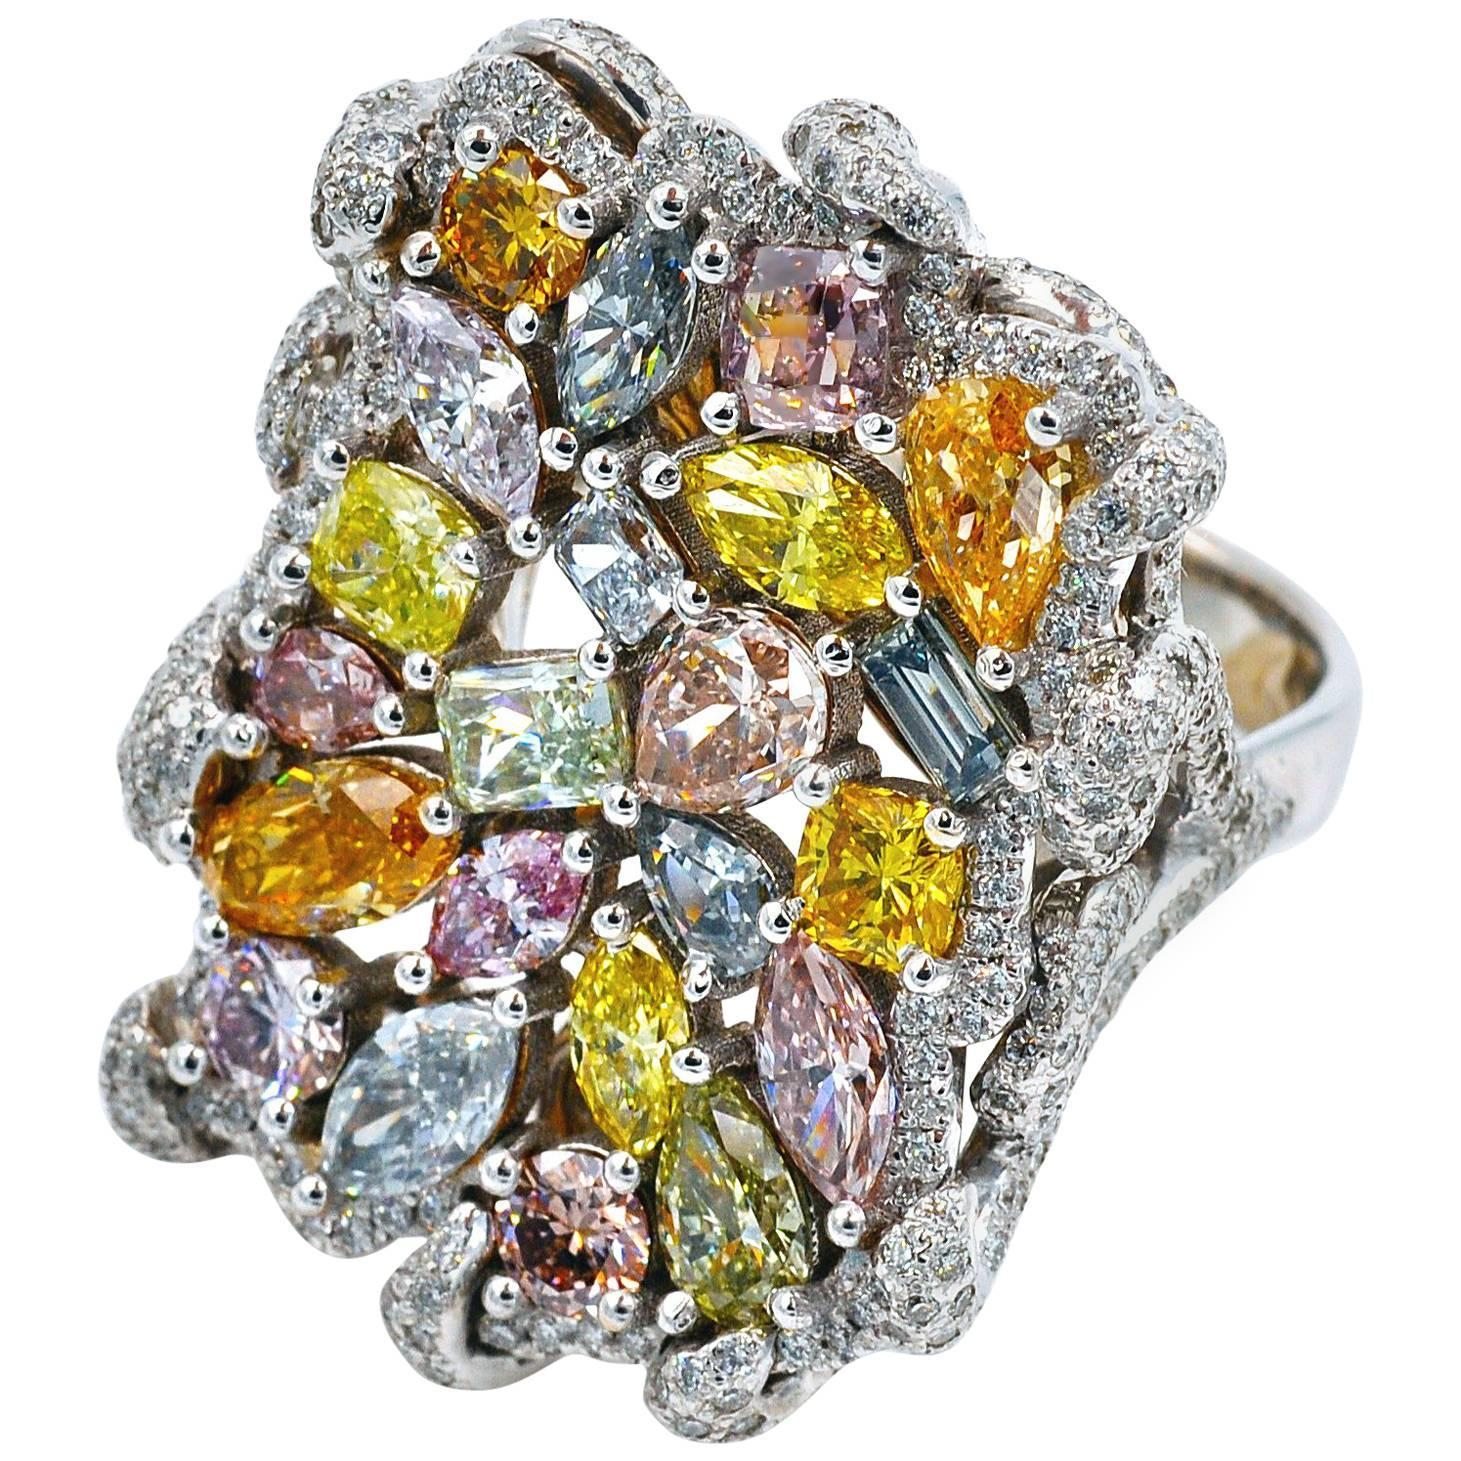 rarities color cent carat diamonds press dorotheum news rosegold g ct ca v en estimate chaumet at brooch workmanship us peridot under in outstanding natural with diamond end a solitaire j archive auction total the of about hammer